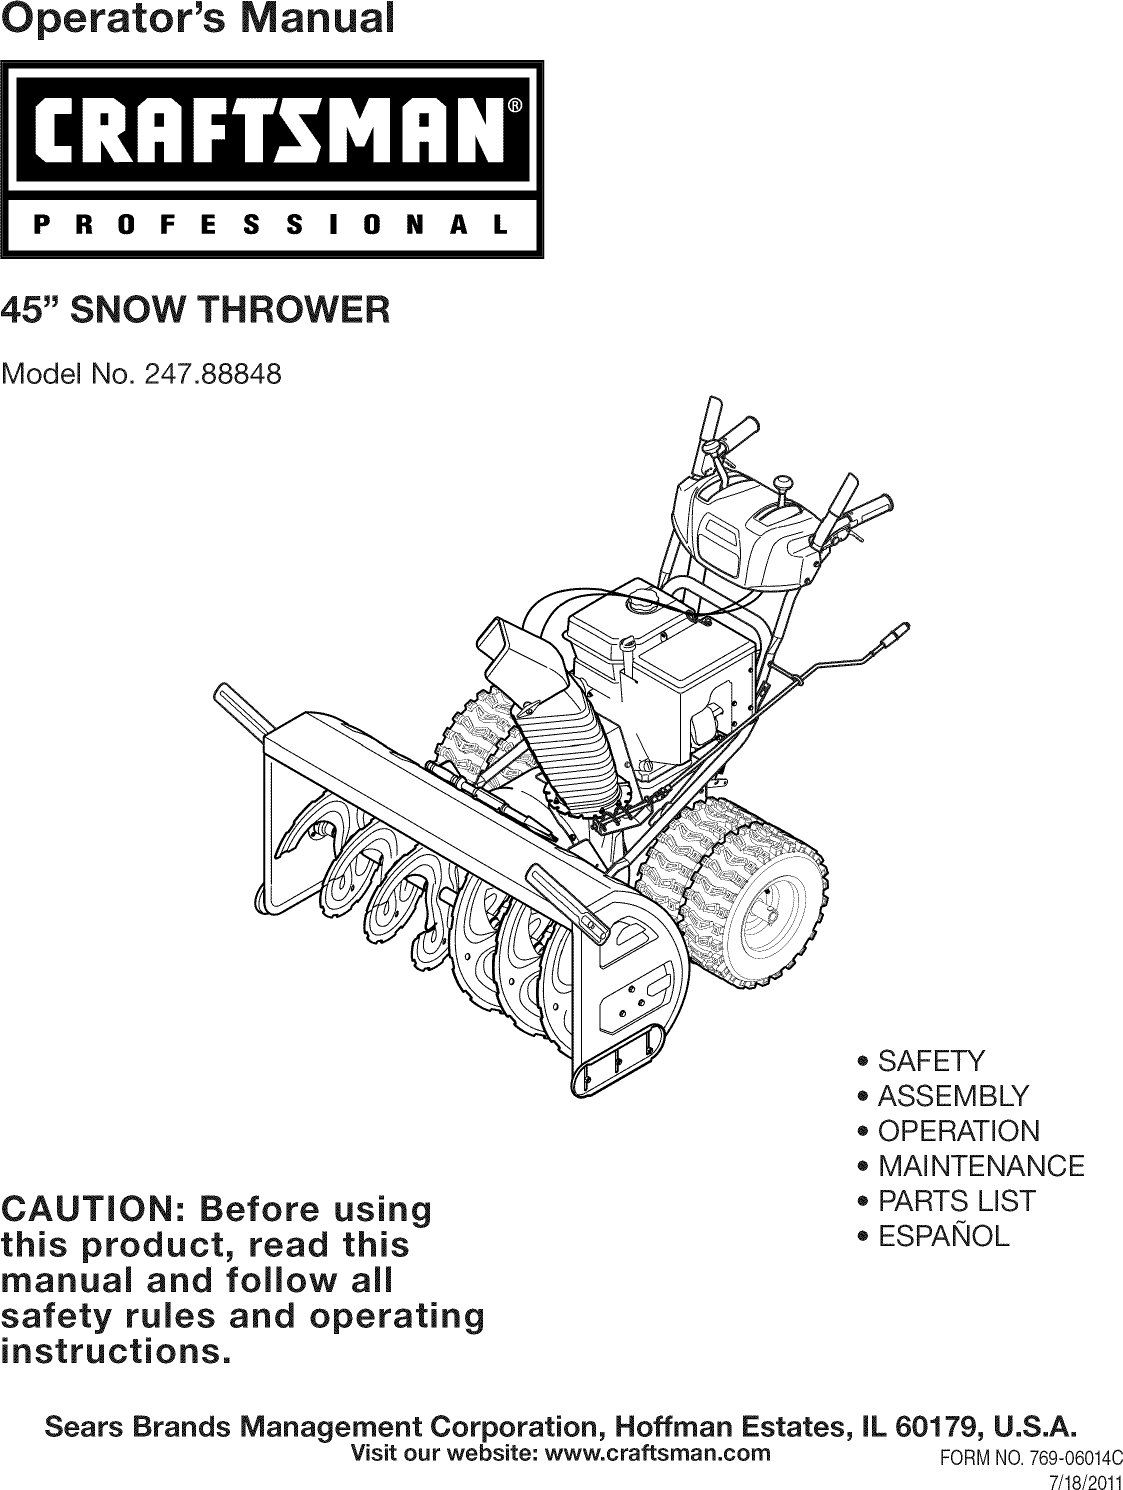 Craftsman 24788848 User Manual SNOW THROWER Manuals And